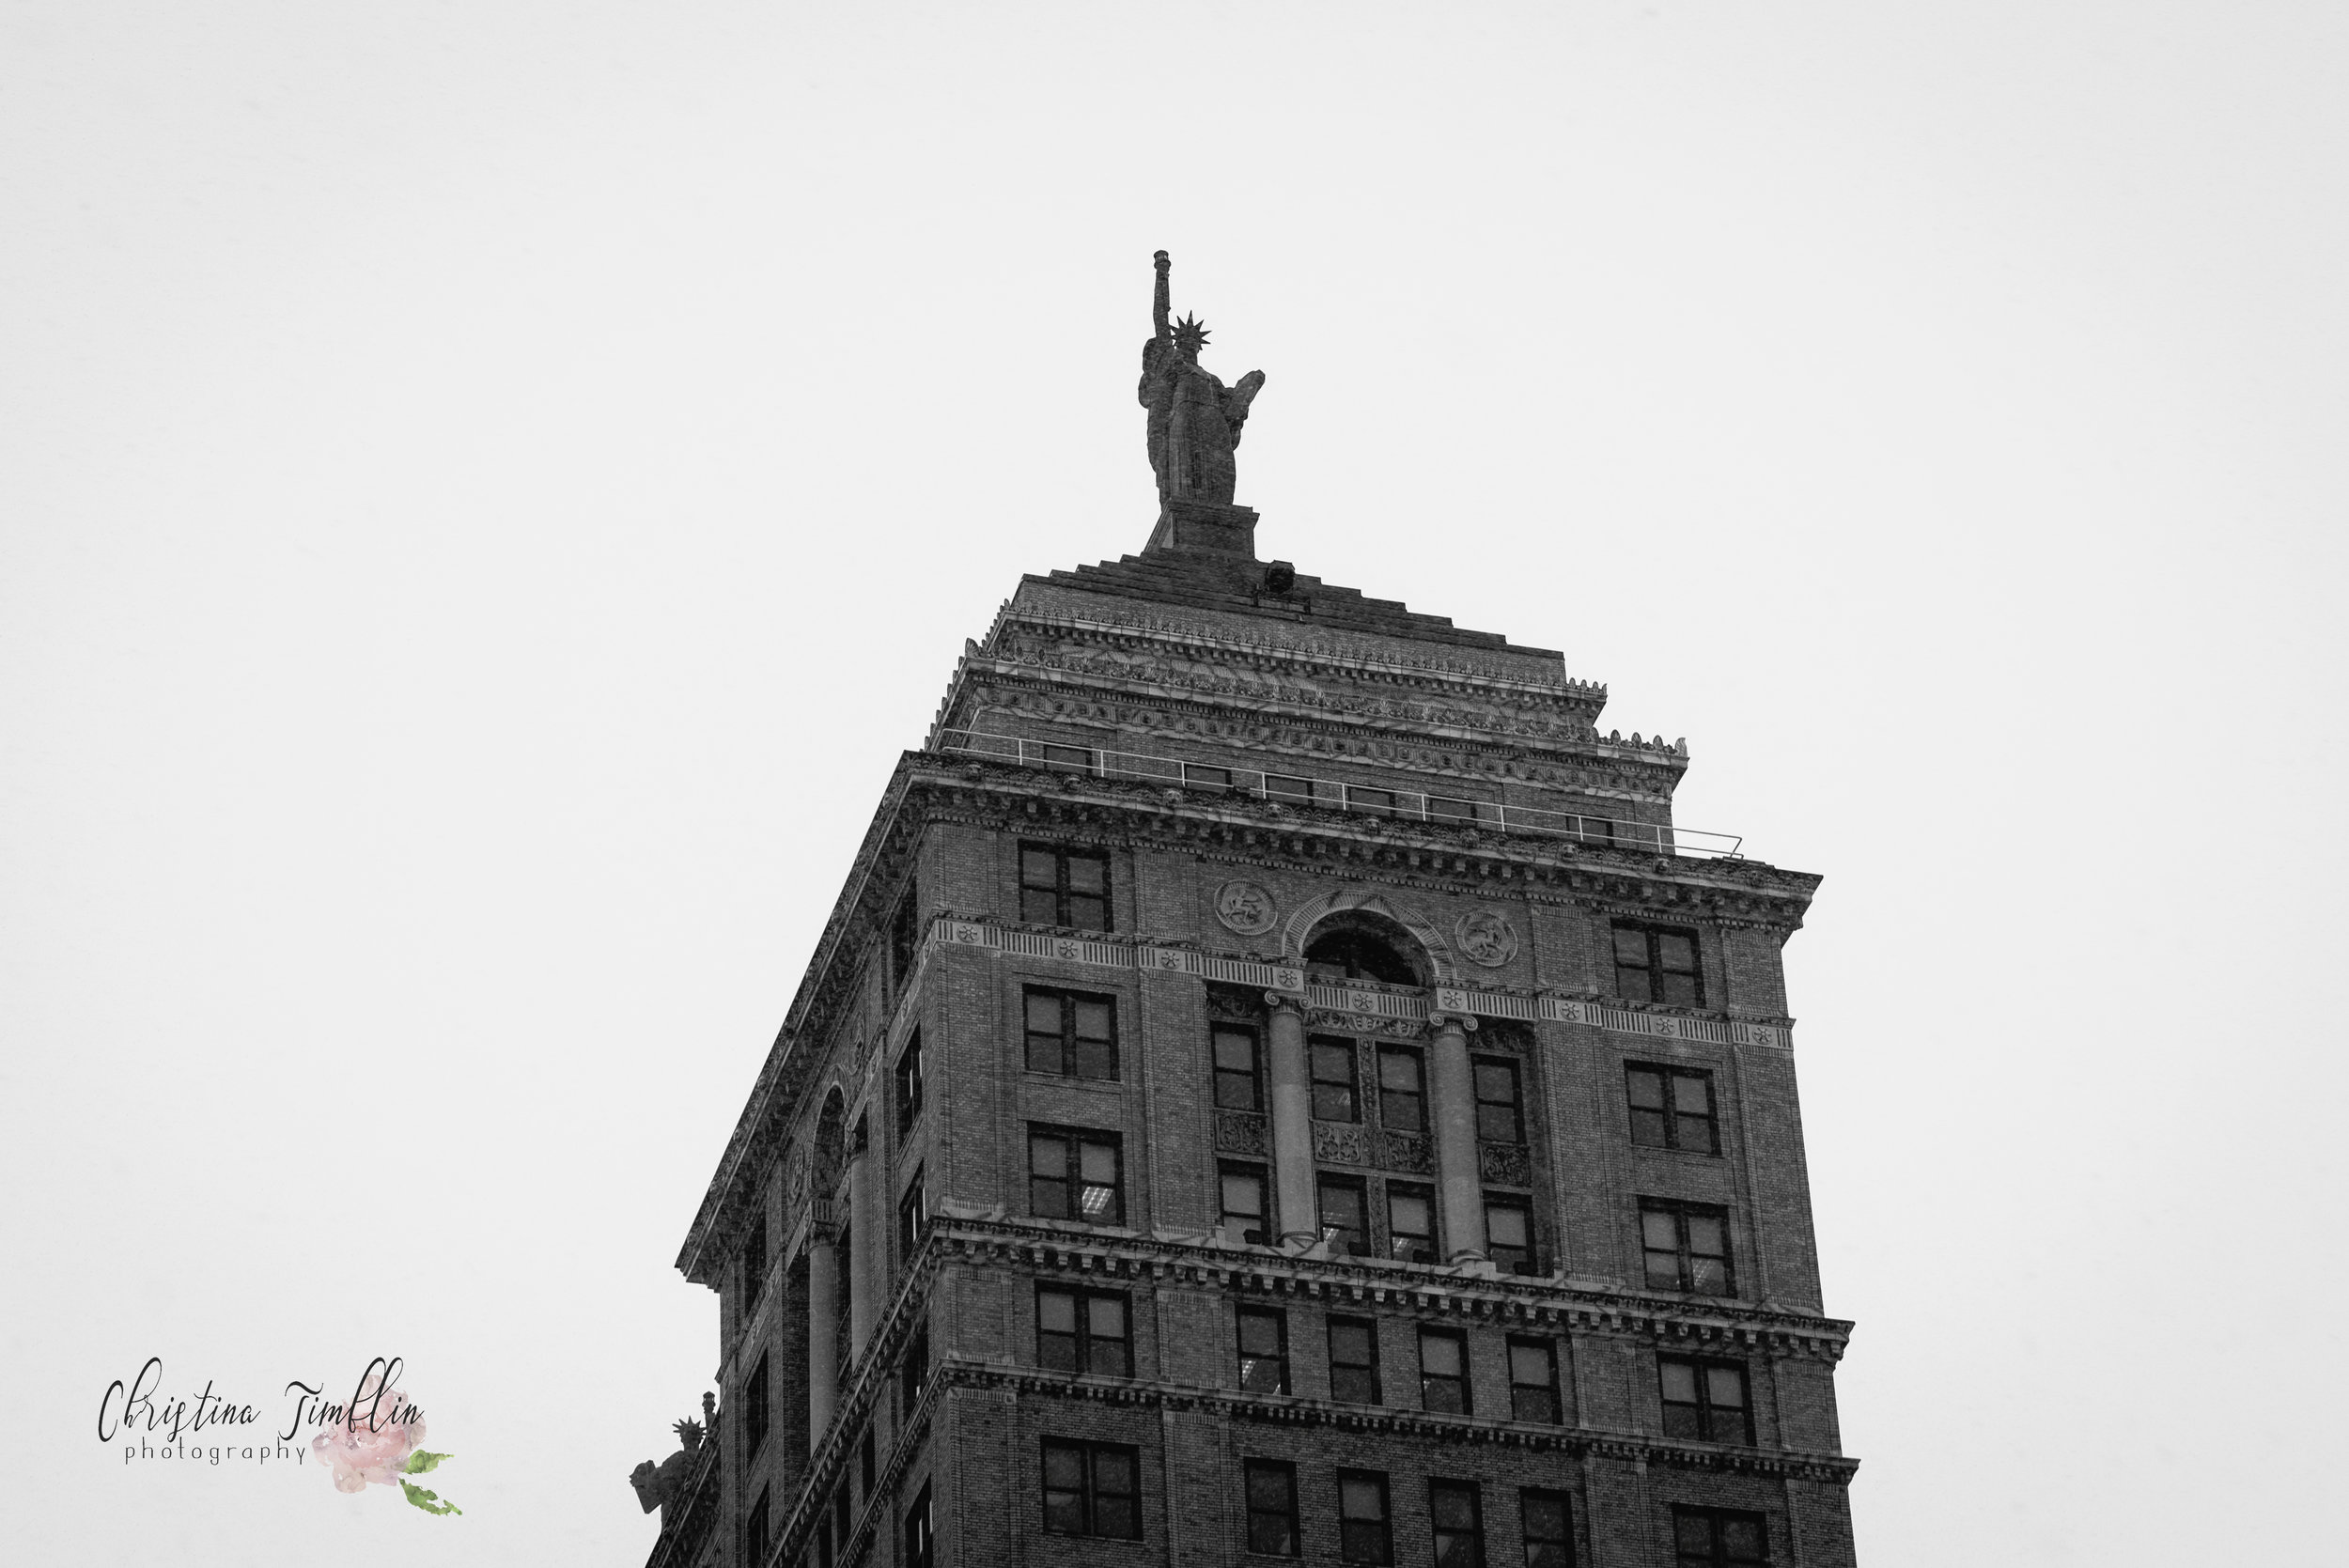 Today's photo is of the beautiful Liberty Building. It was built in 1925, and at that time, was the largest office building downtown. The building originally had 3 Statue of Liberty replicas standing 36' tall. Just the two facing east and west on the roof remain. The Liberty building is currently the 5th tallest building in Buffalo.